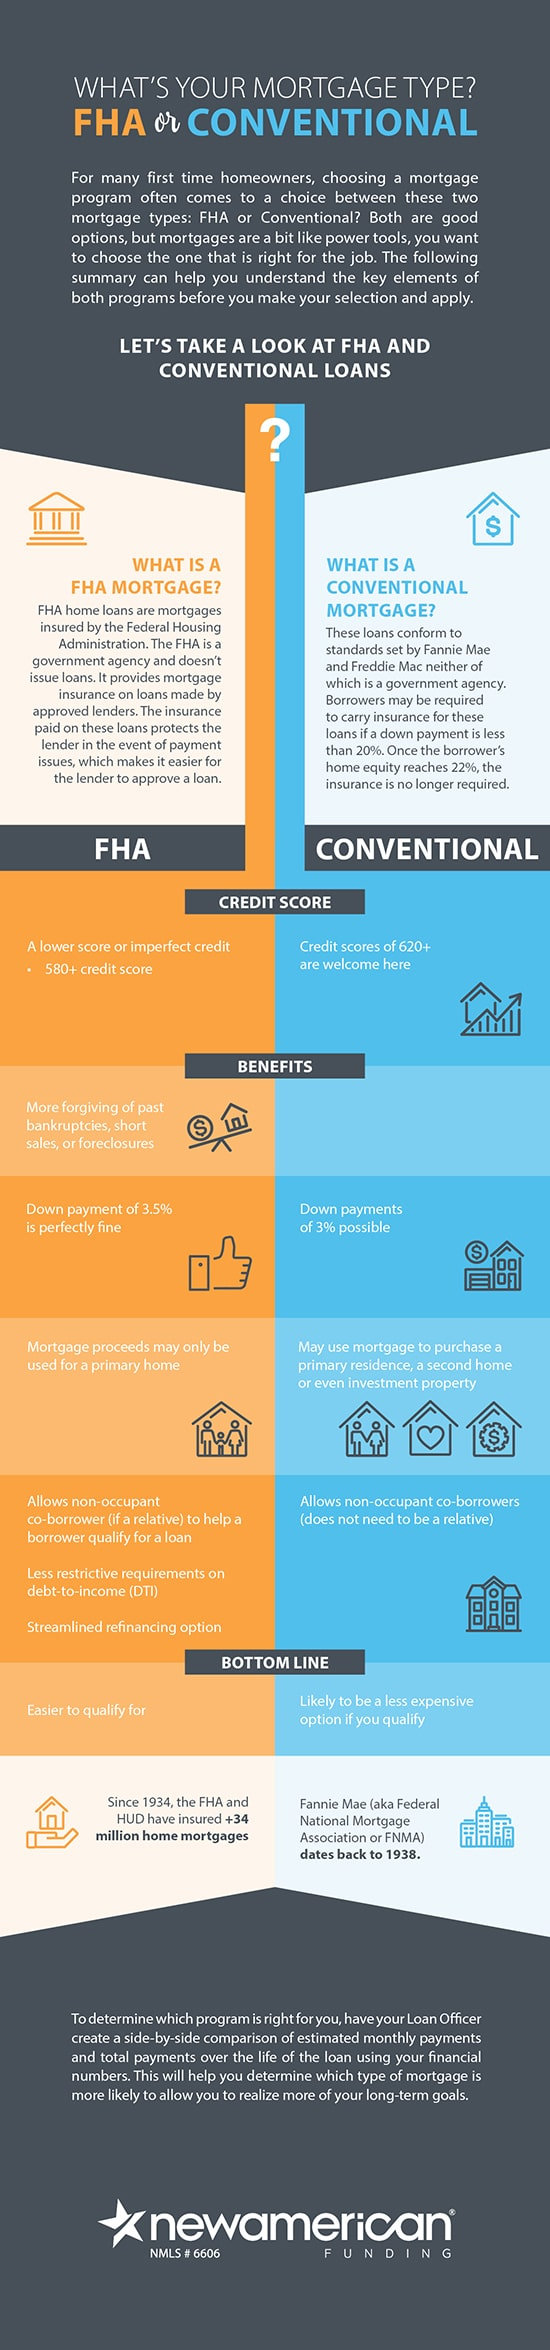 FHA vs. Conventional Infographic